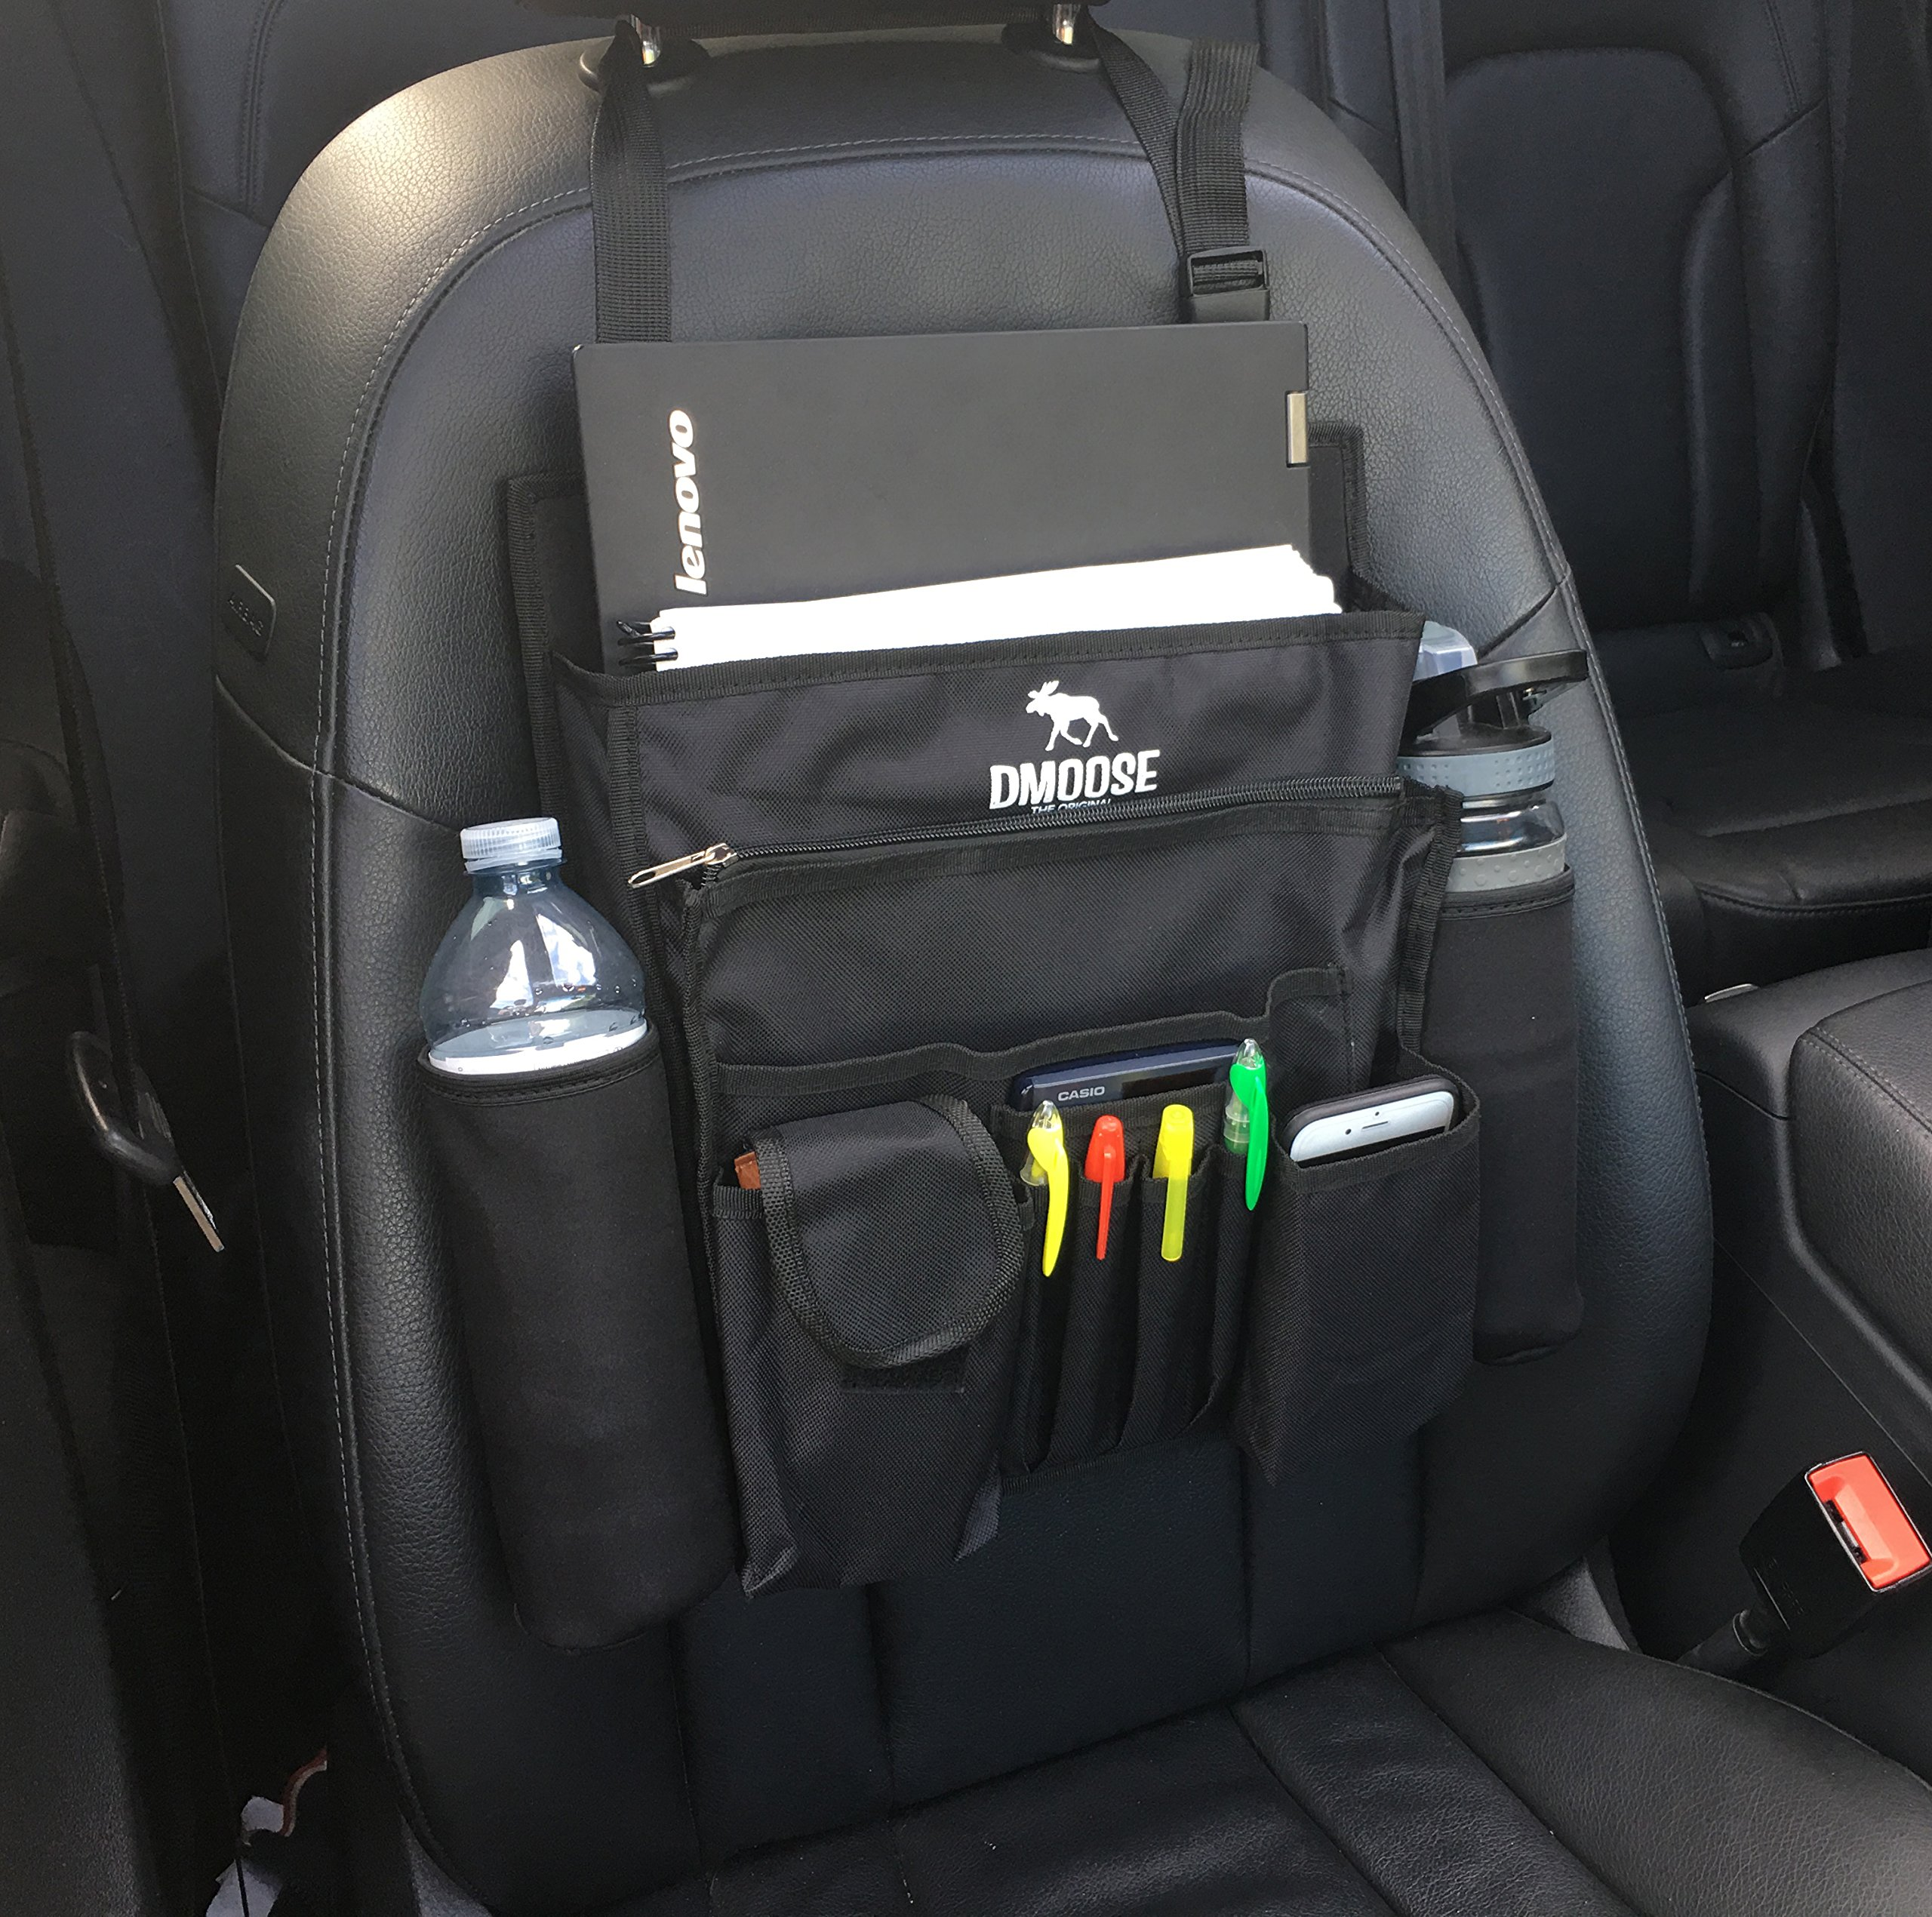 Car Front Passenger Seat Organizer With Laptop Tablet Storage By DMoose 17X1